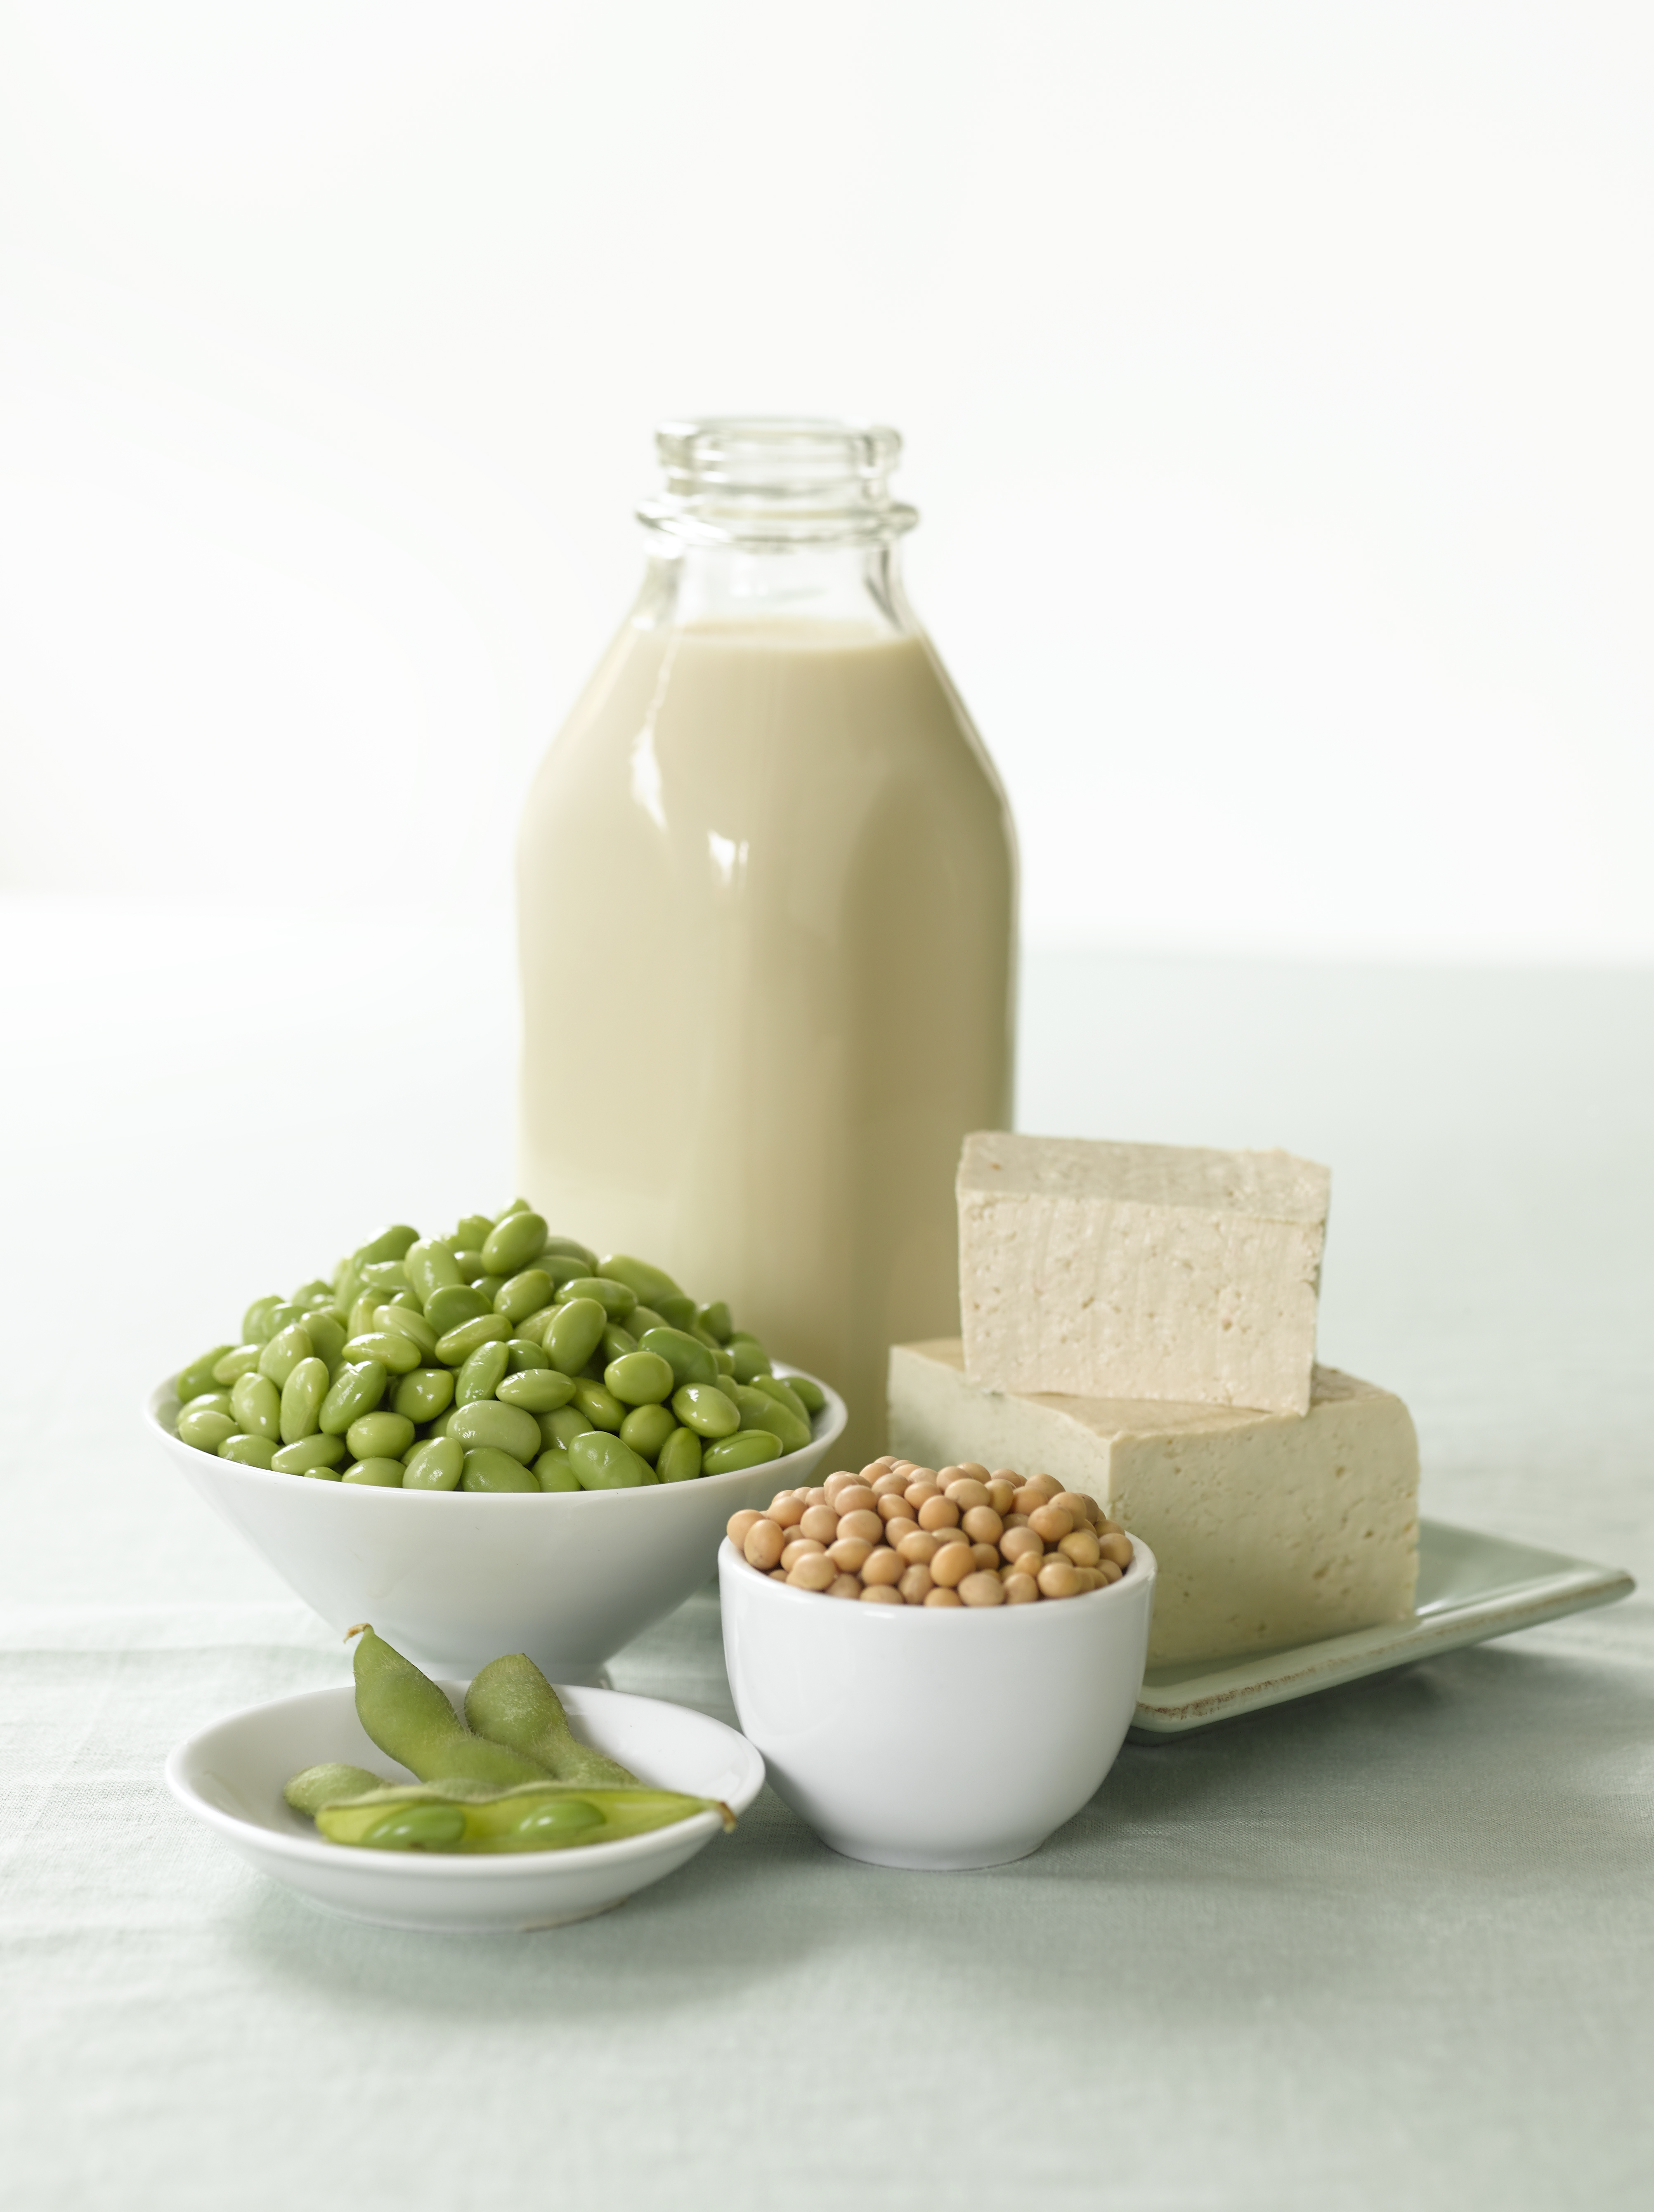 Soy Products Getty